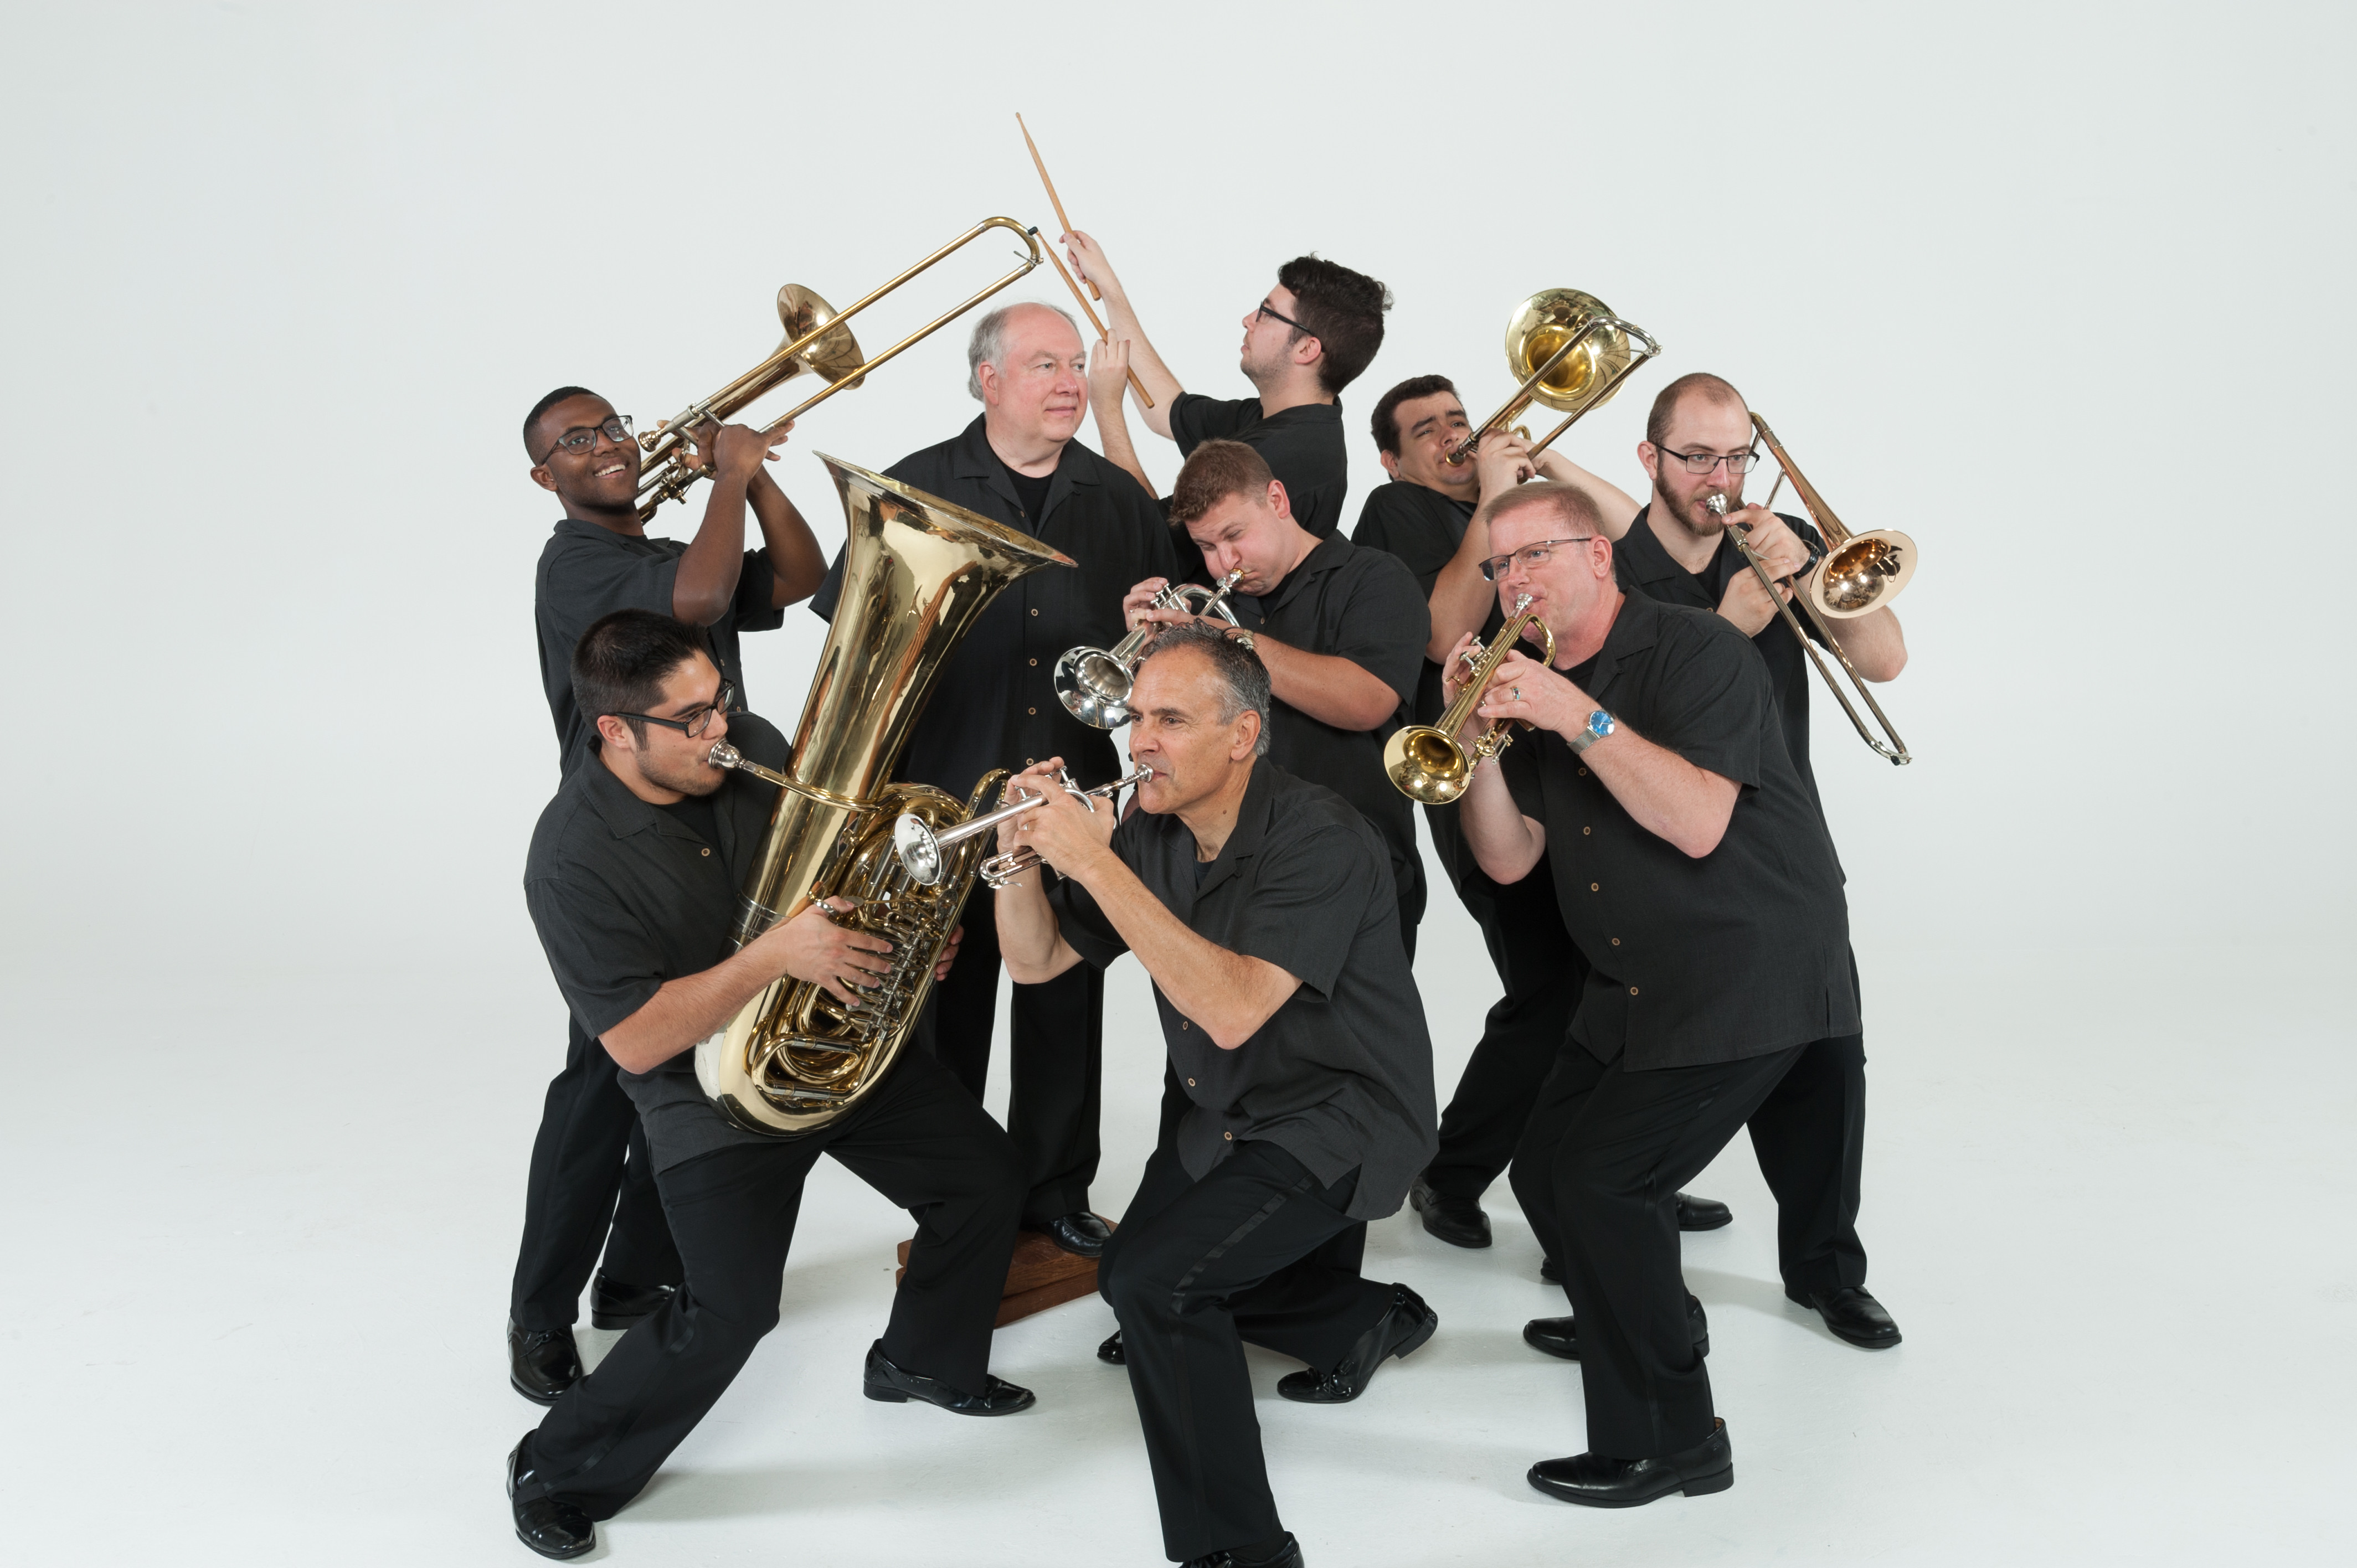 The King's Brass